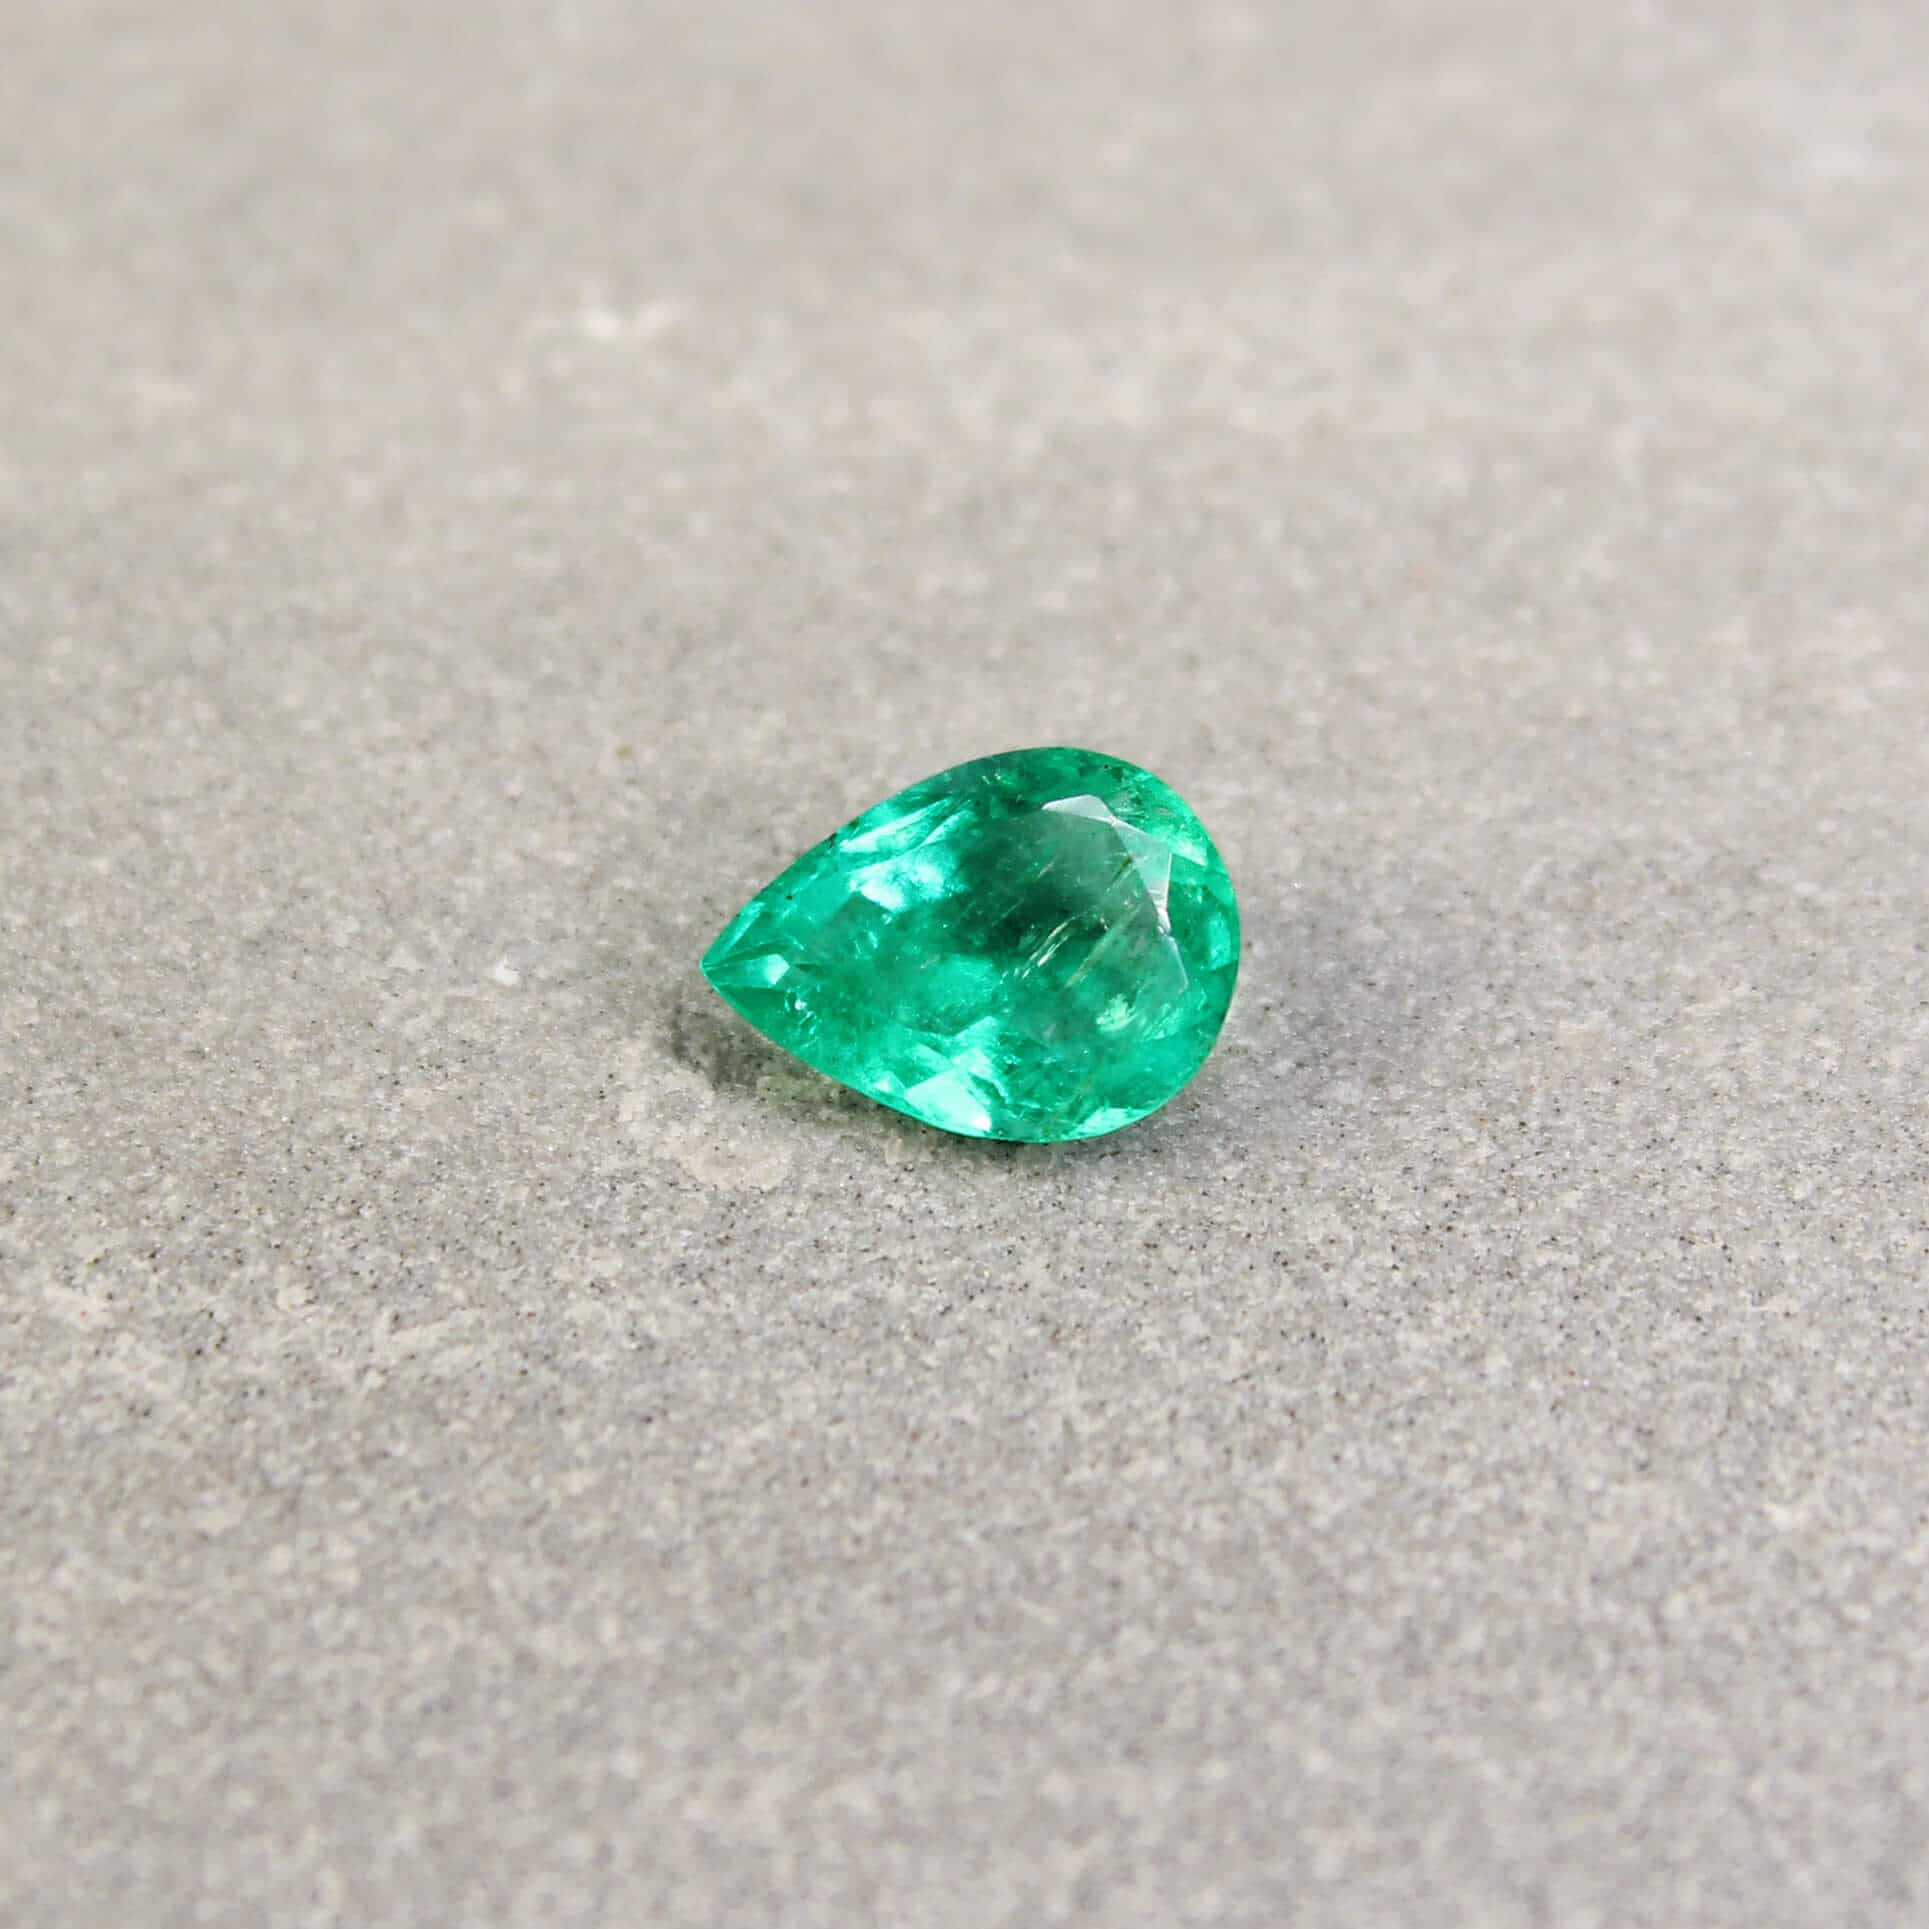 1.16 ct bluish green pear emerald